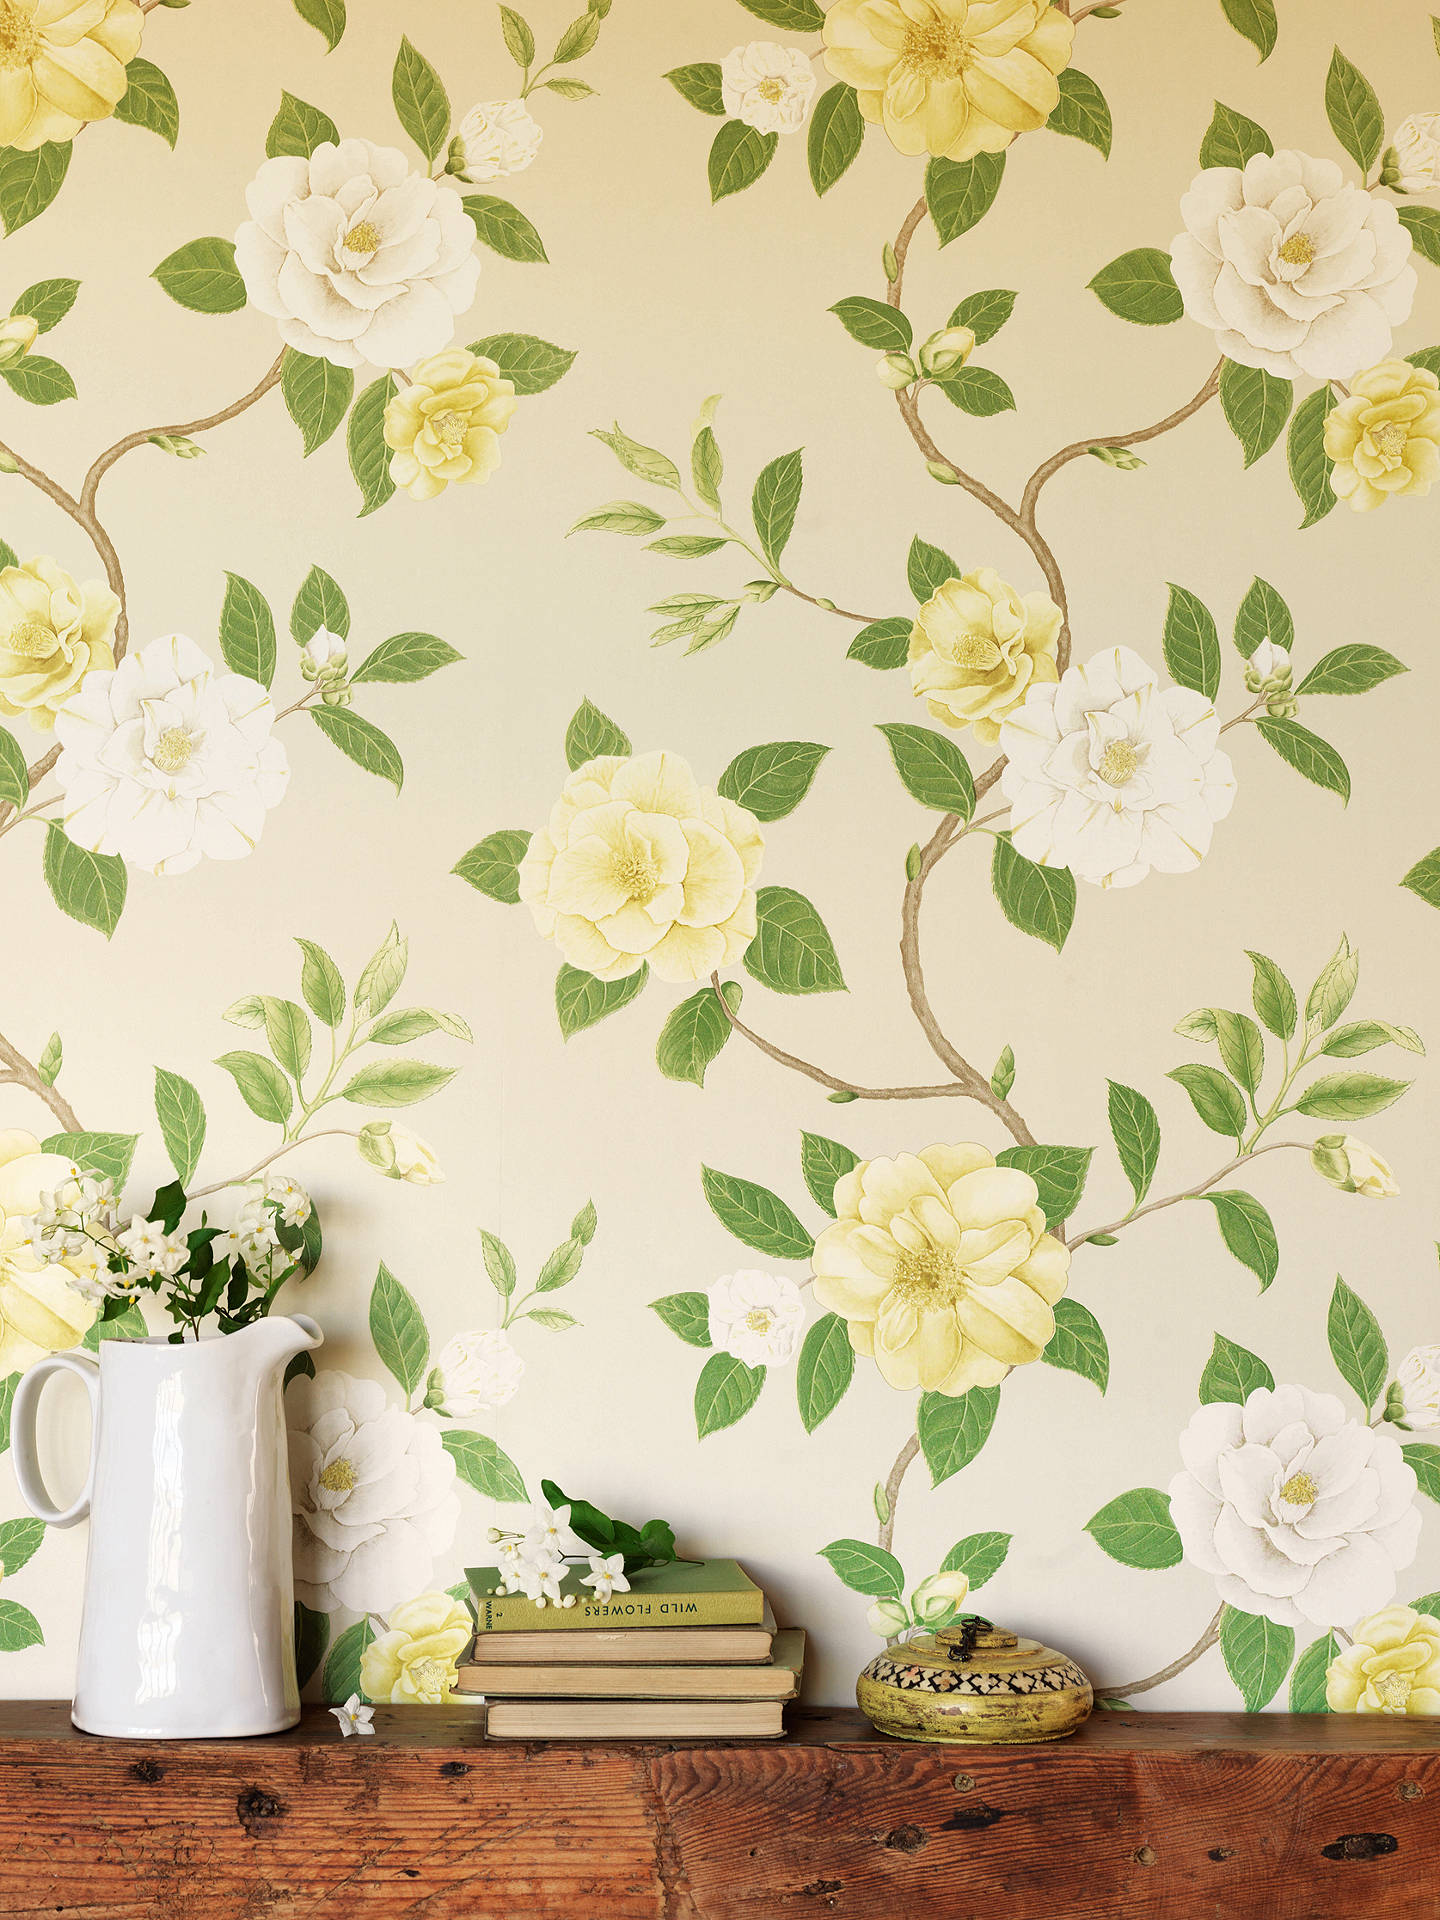 Buy Sanderson Christabel Wallpaper, Yellow/Ivory, DVOY213377 Online at johnlewis.com